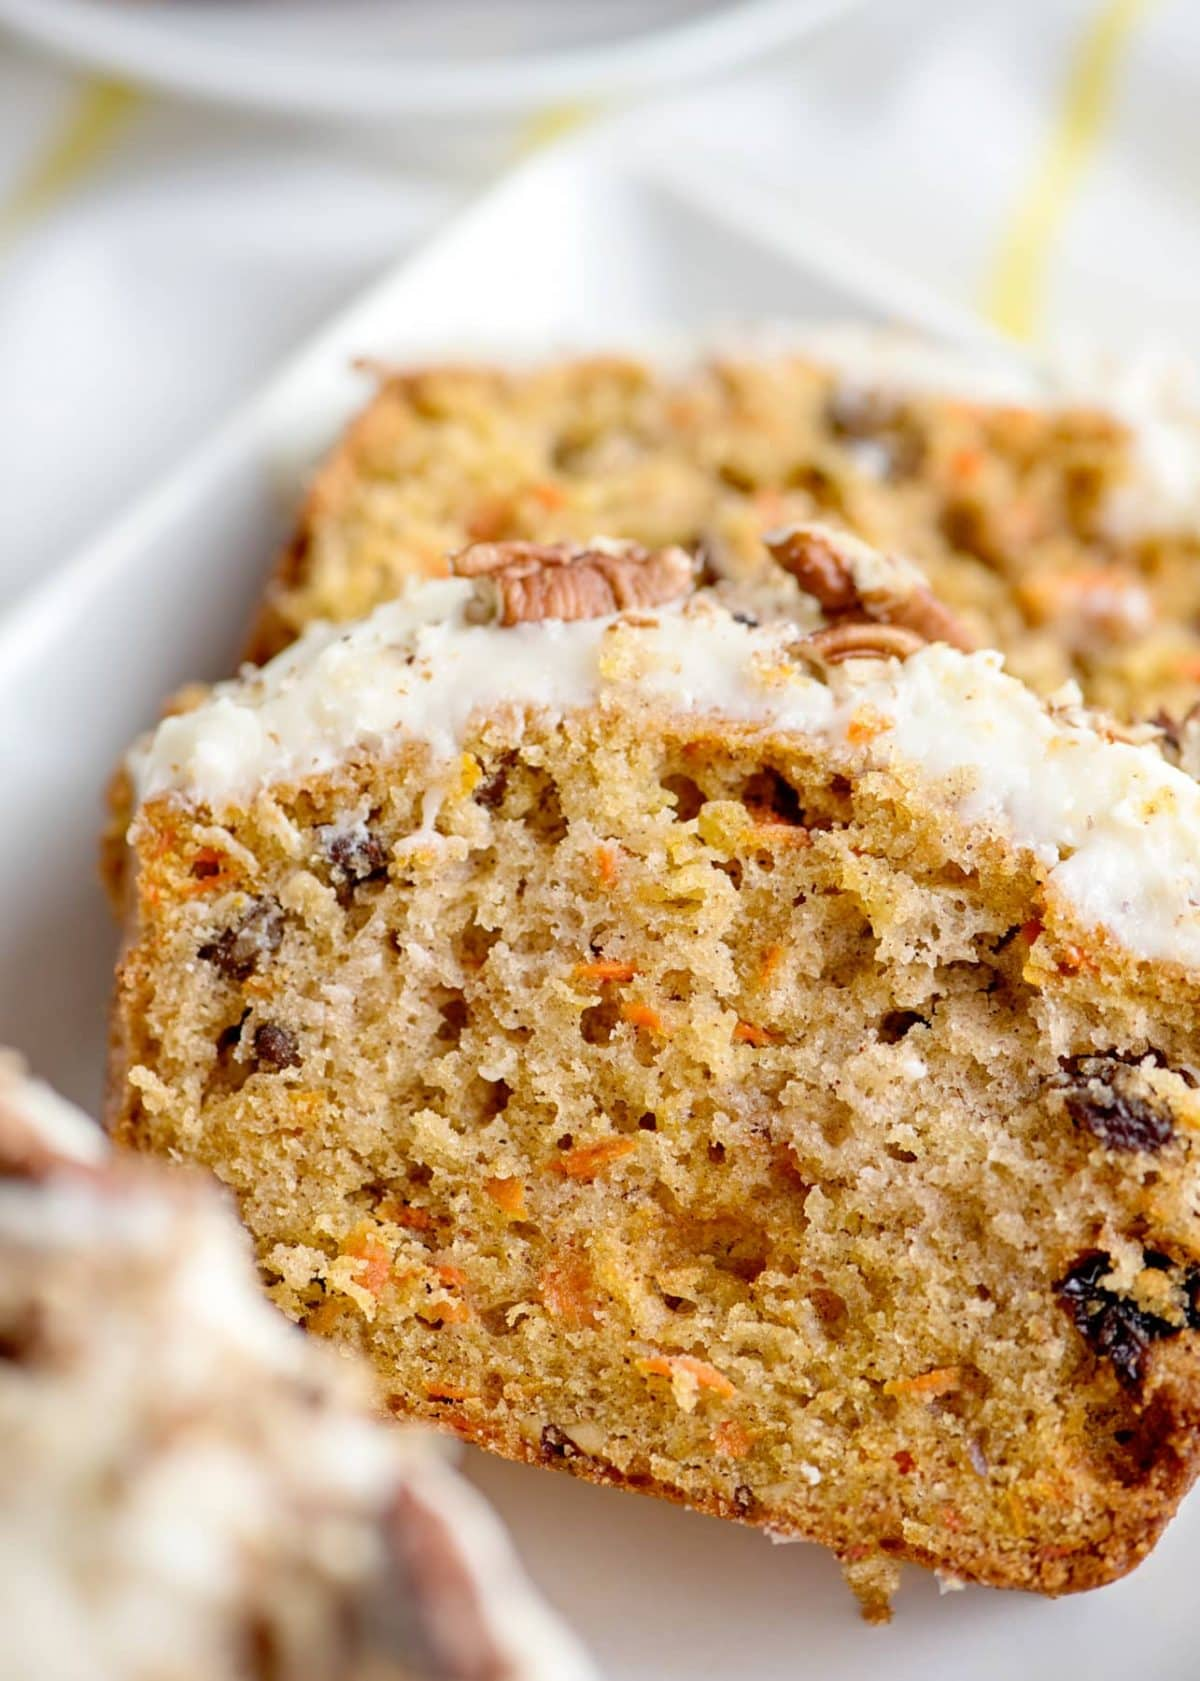 carrot cake bread slices on plate with icing and raisins